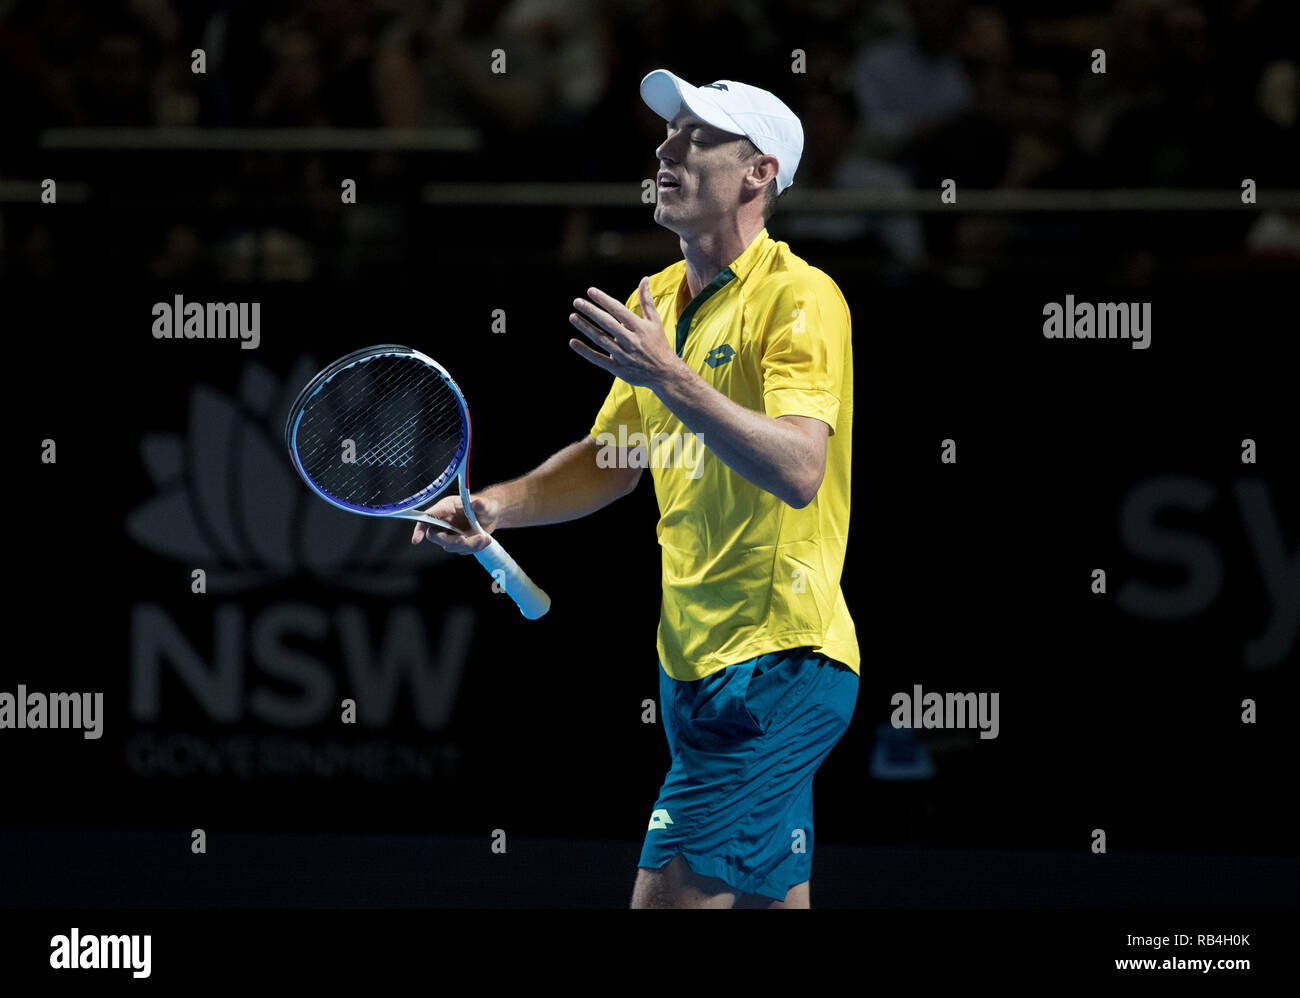 Sydney, Australia. 7th Jan, 2019. John Millman of Australia reacts during the men's single match against Milos Raonic of Canada at Fast4 Showdown in 2019 Sydney Tennis Open in Sydney, Australia, Jan. 7, 2019. John Millman won 2-0. Credit: Zhu Hongye/Xinhua/Alamy Live News - Stock Image